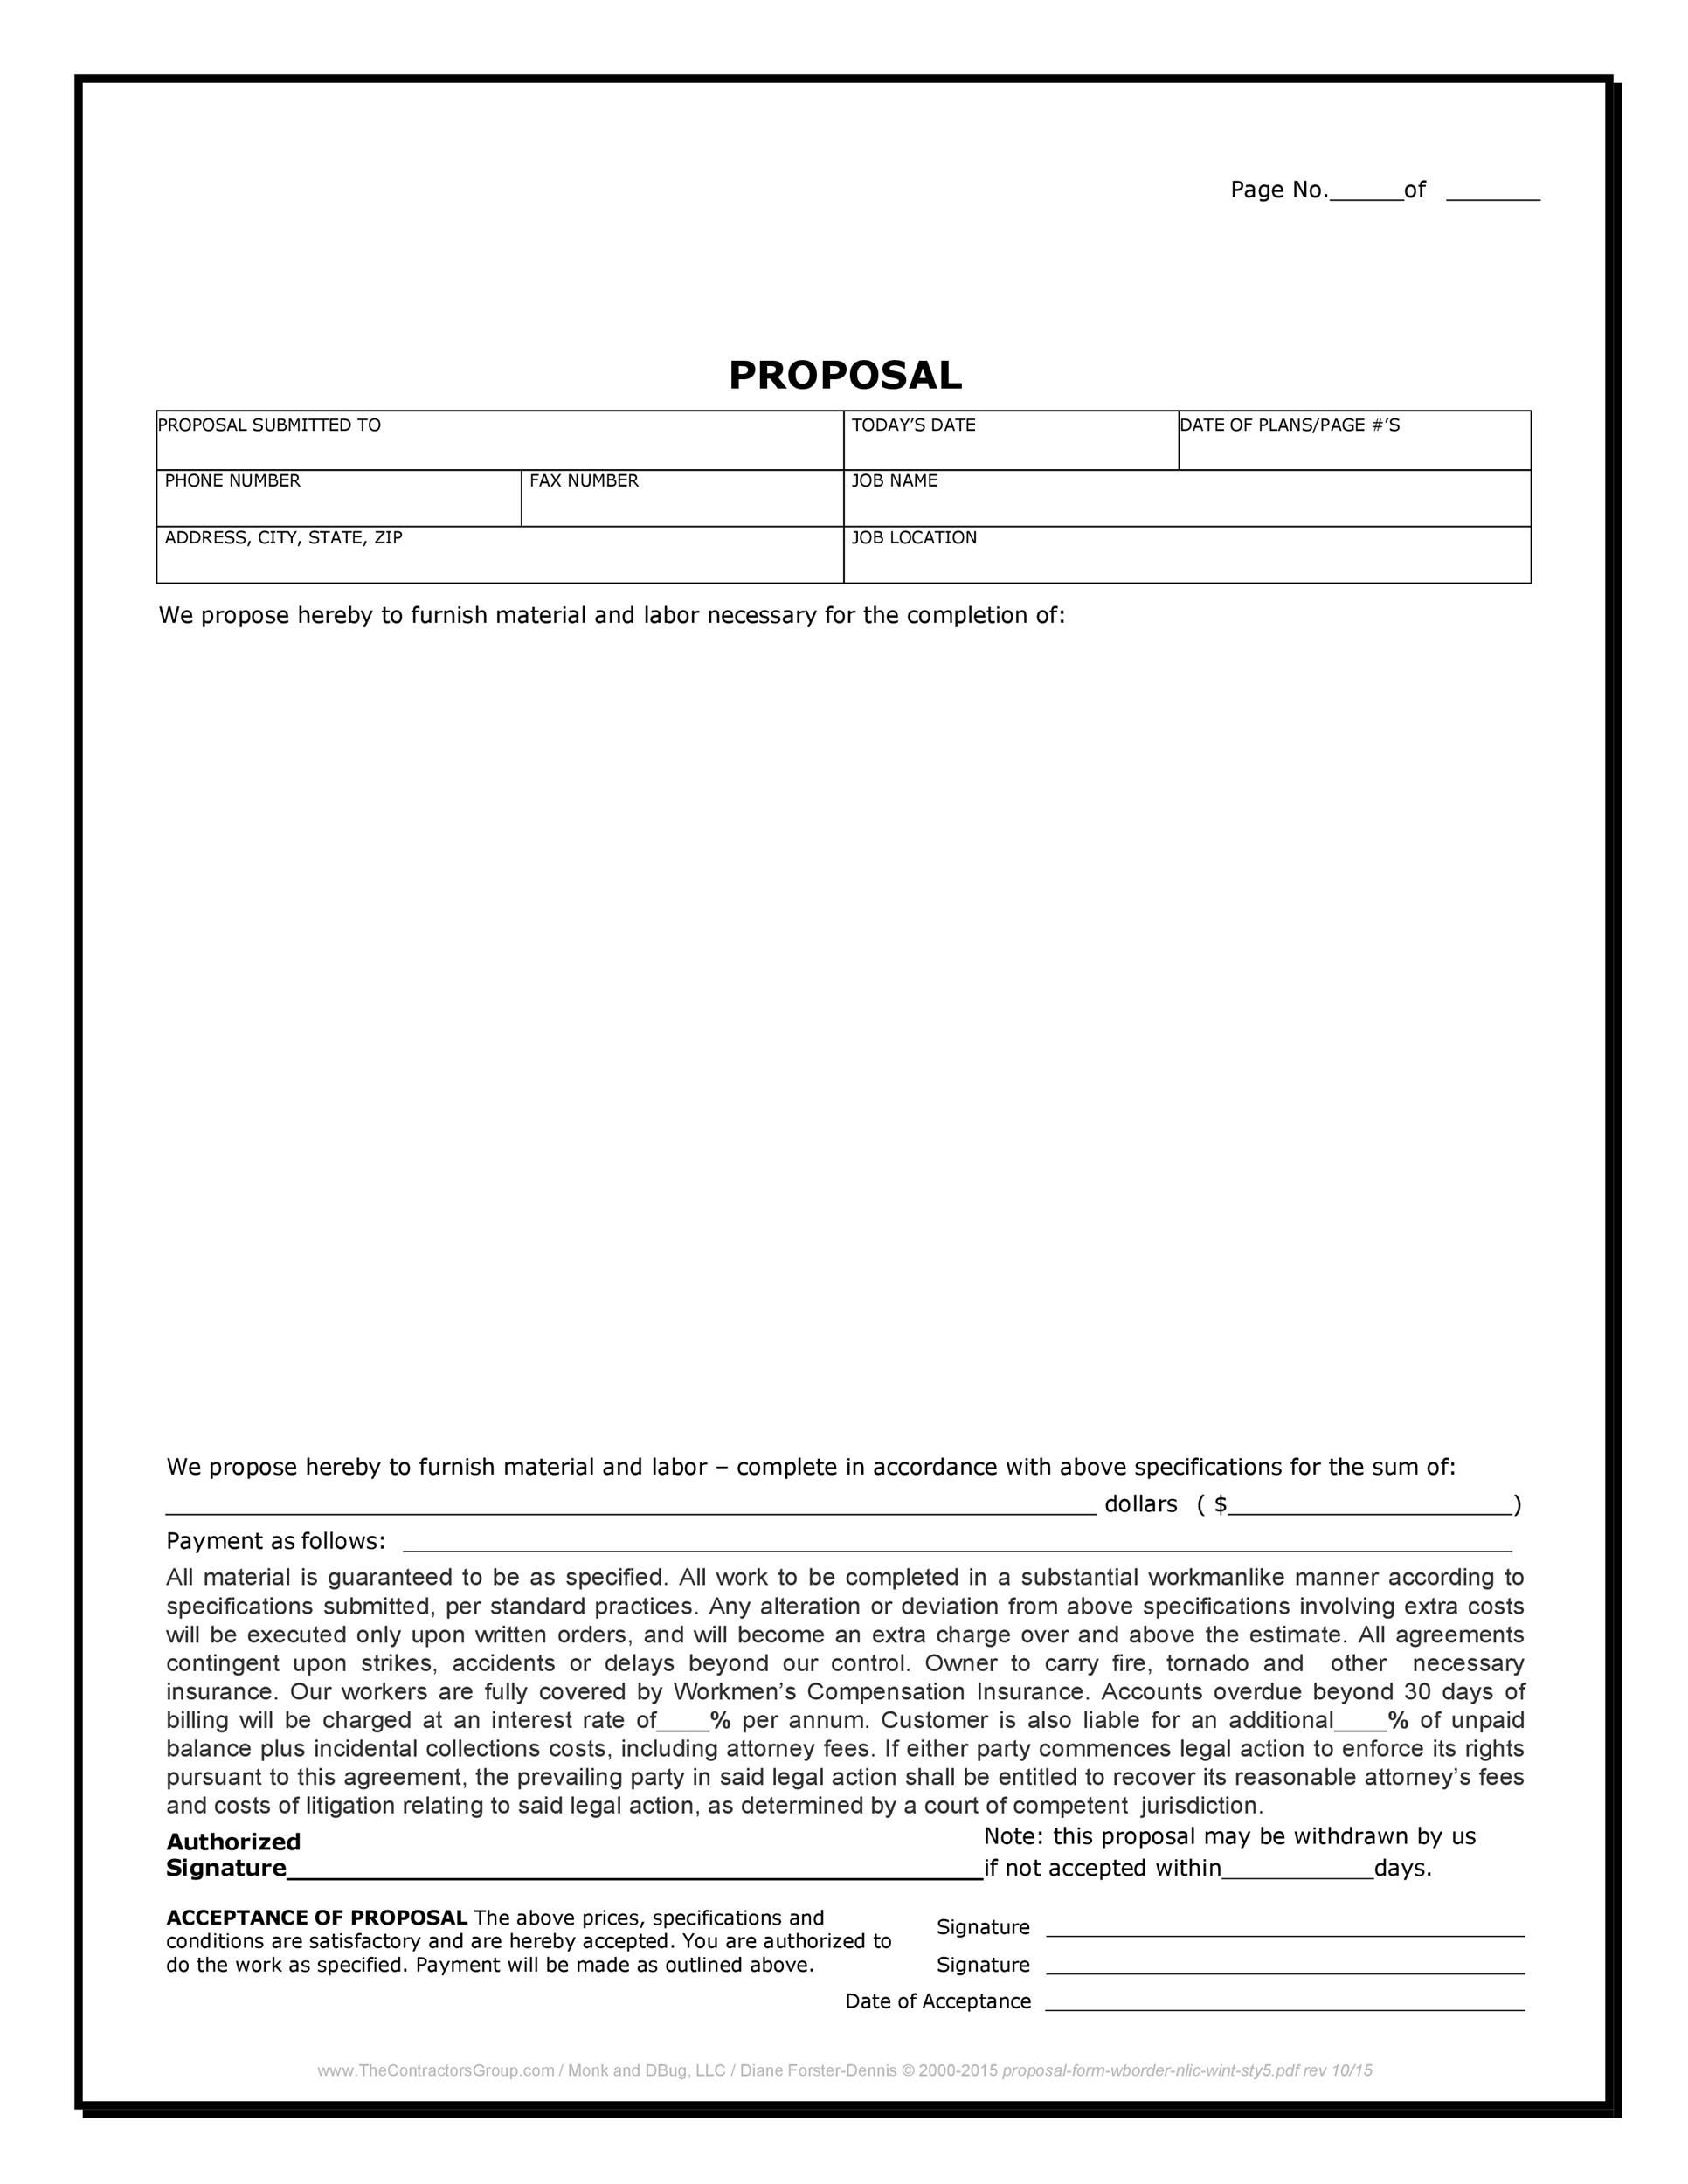 007 Exceptional Contractor Proposal Template Pdf High Definition  Construction Bid Upwork Sample FreeFull